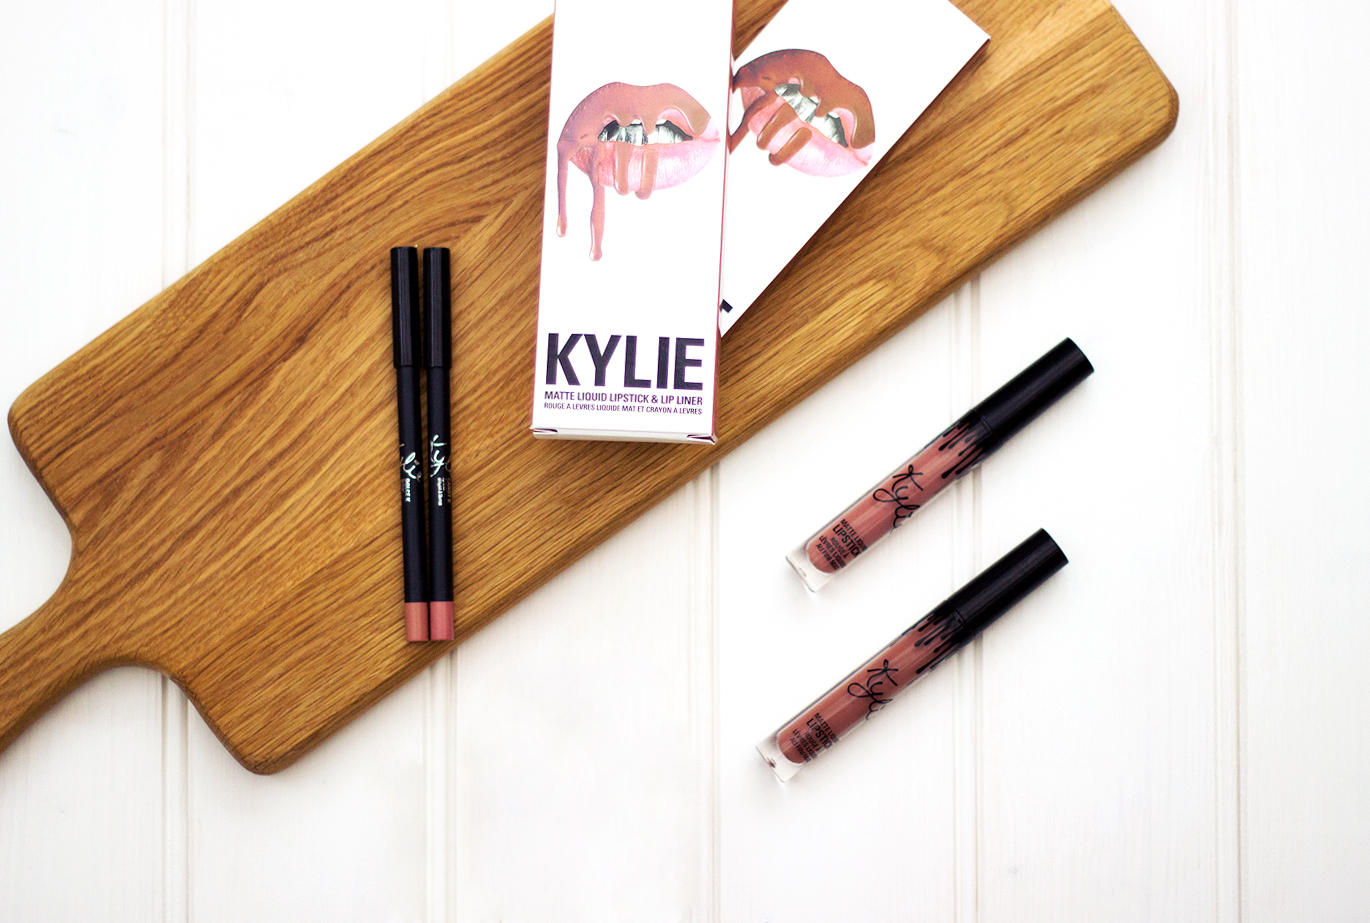 Lip Kit By Kylie Jenner, Lip Kit by Kylie Dolce K, Lip Kit by Kylie Candy K